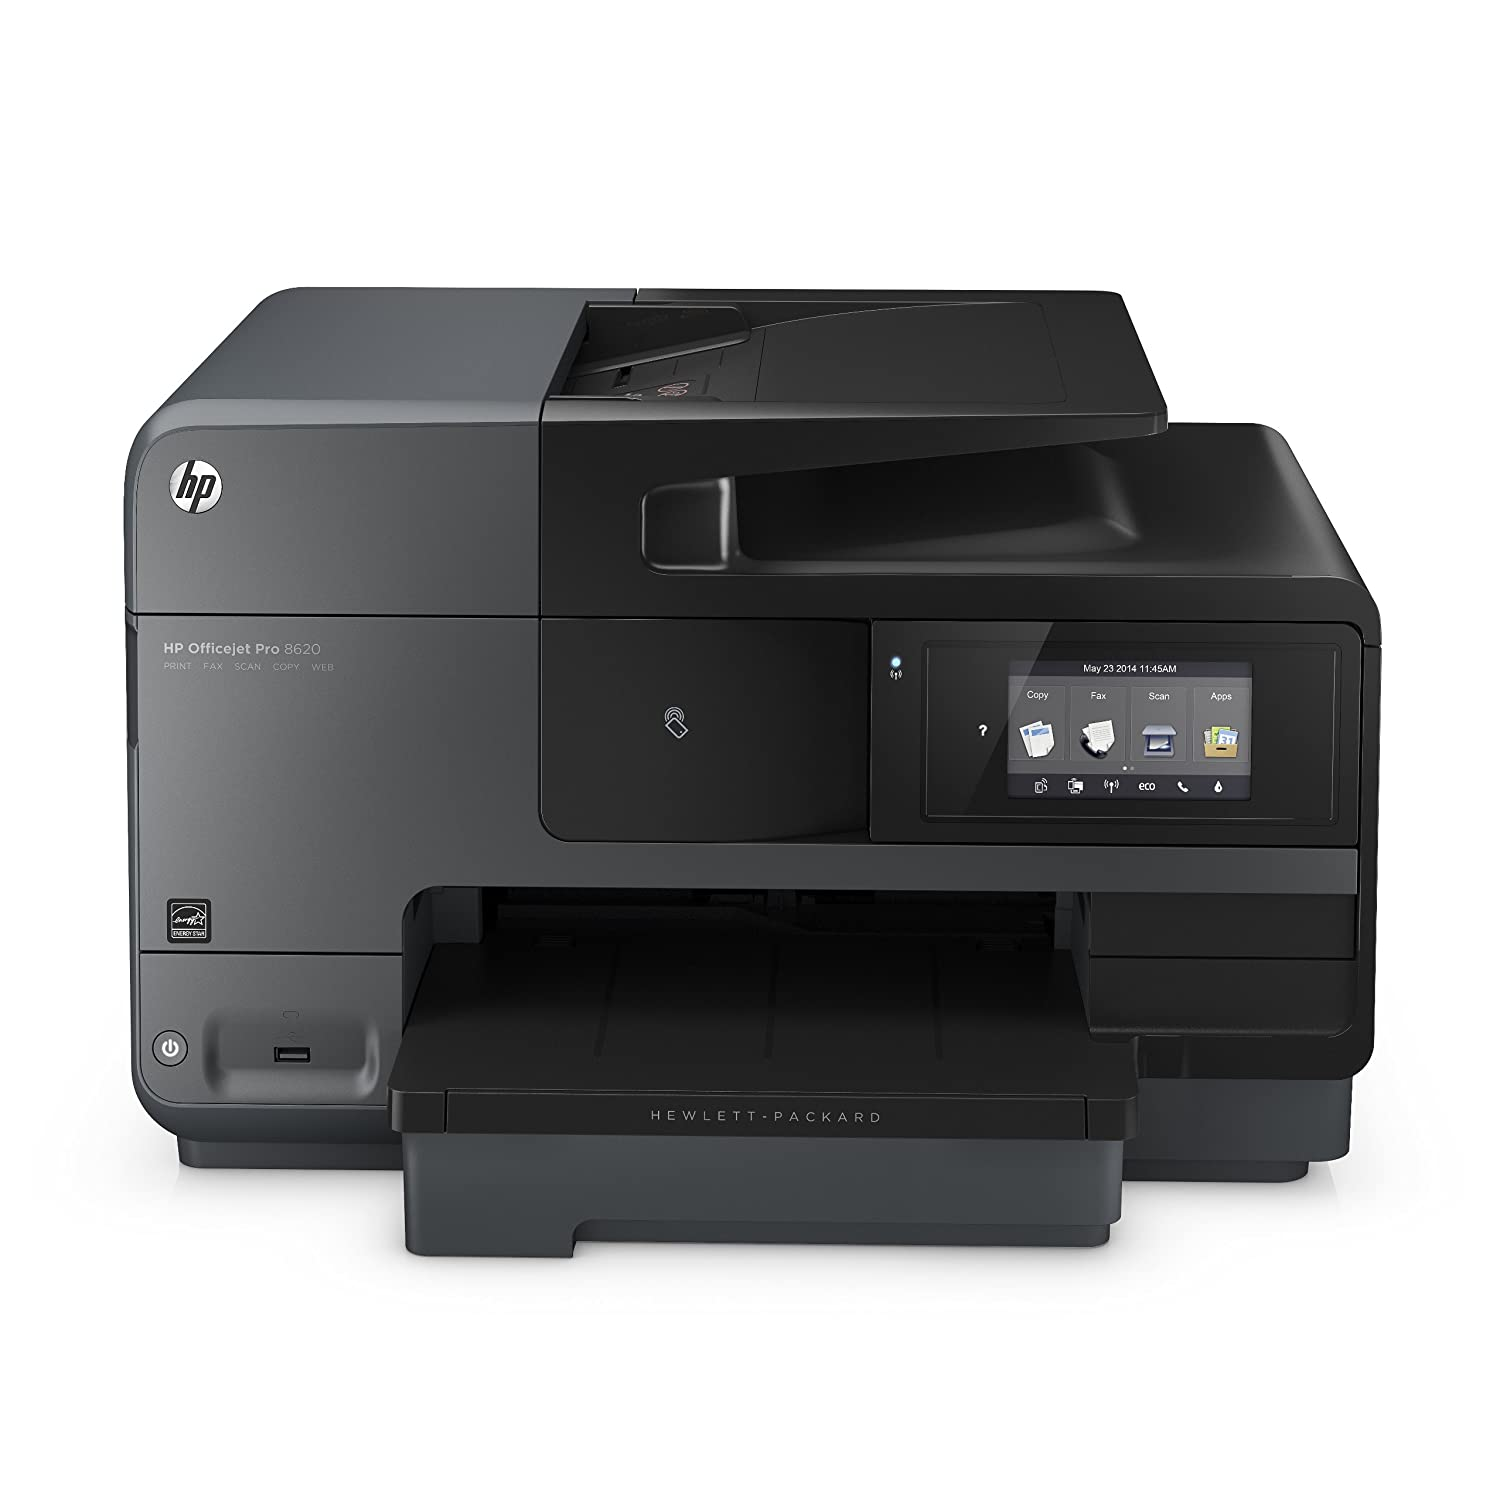 amazon com hp officejet pro 8620 wireless all in one photo